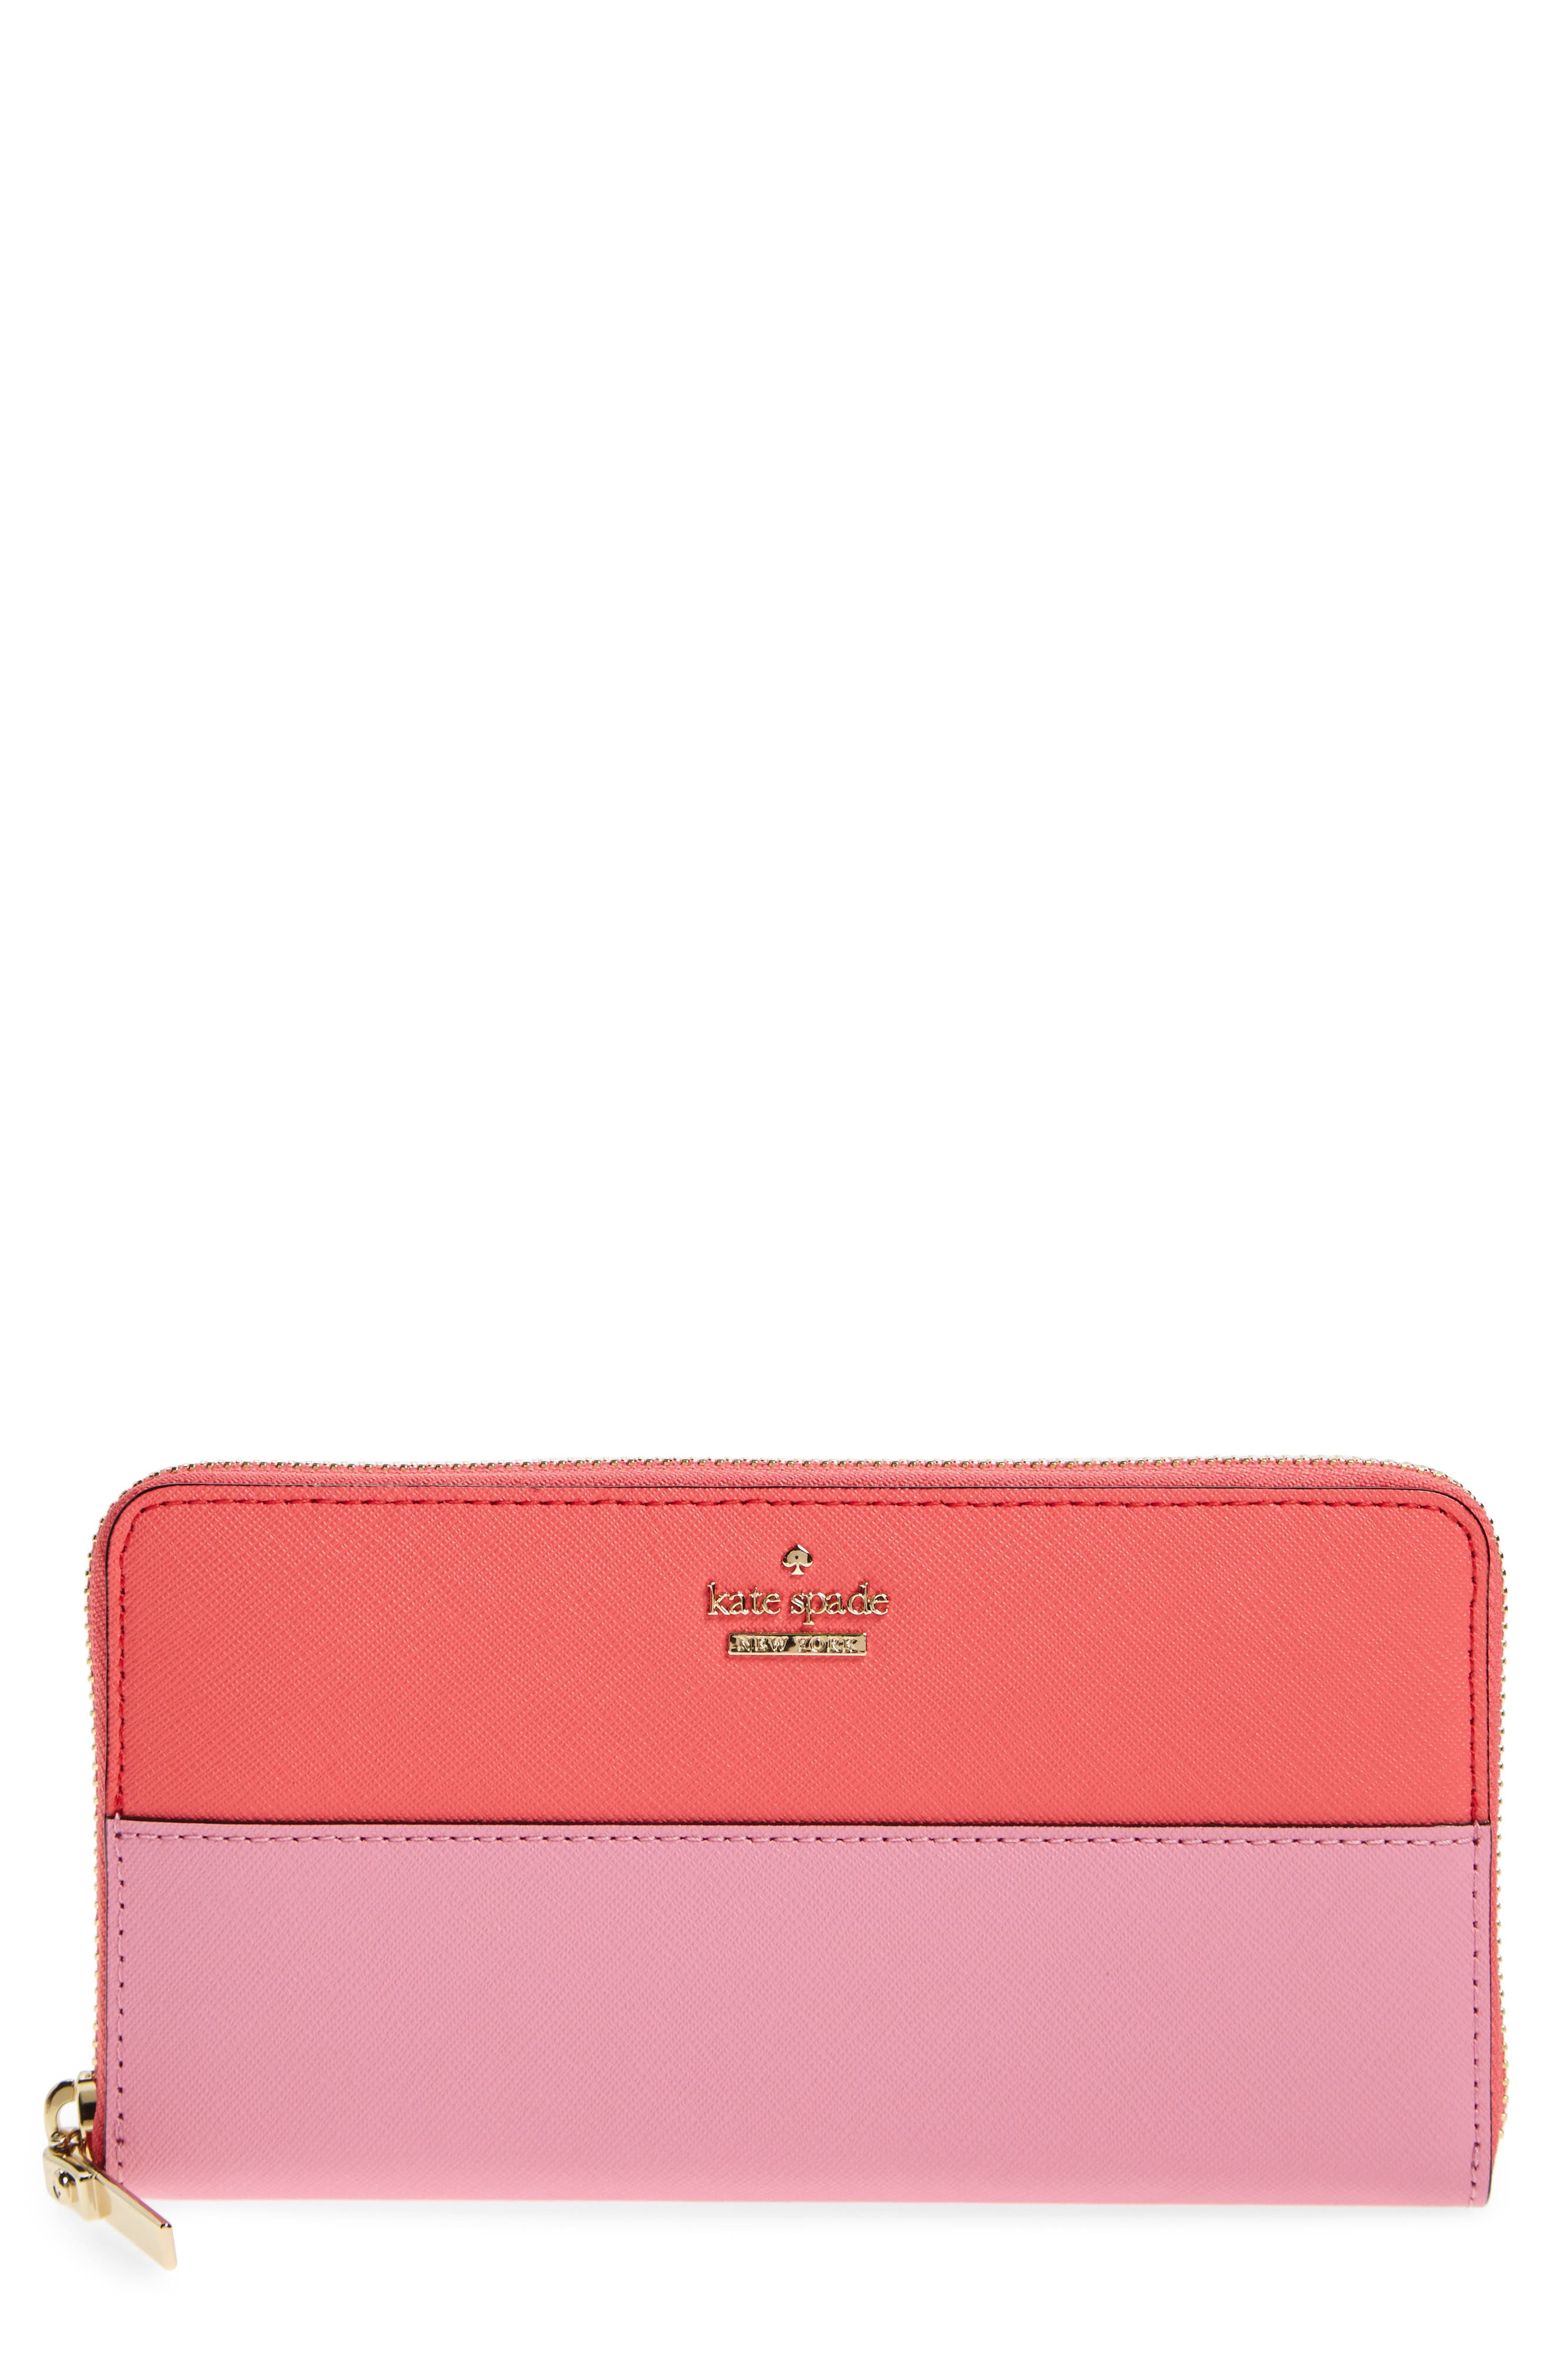 kate spade new york 'cameron street - lacey' leather wallet